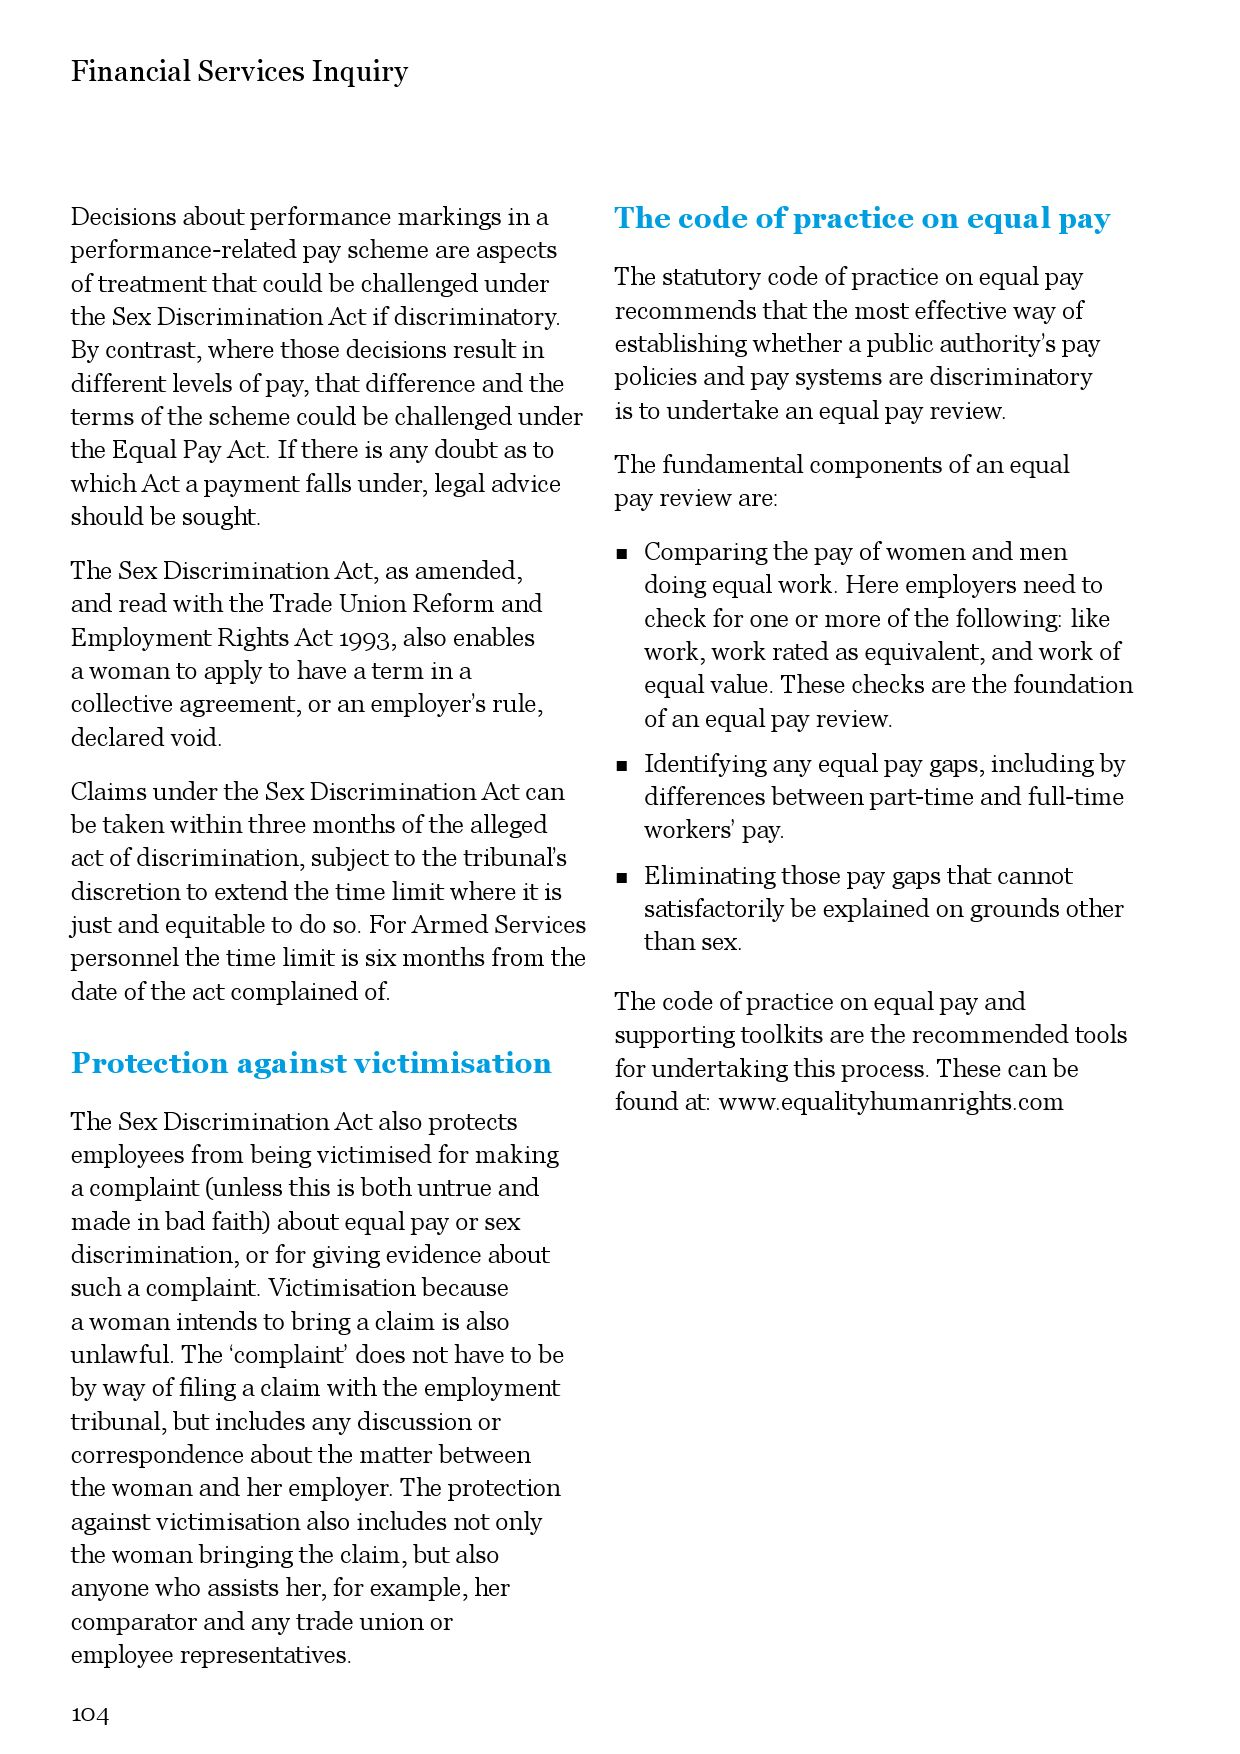 Ehrc Financial Services Inquiry Report By Equality And Human Rights